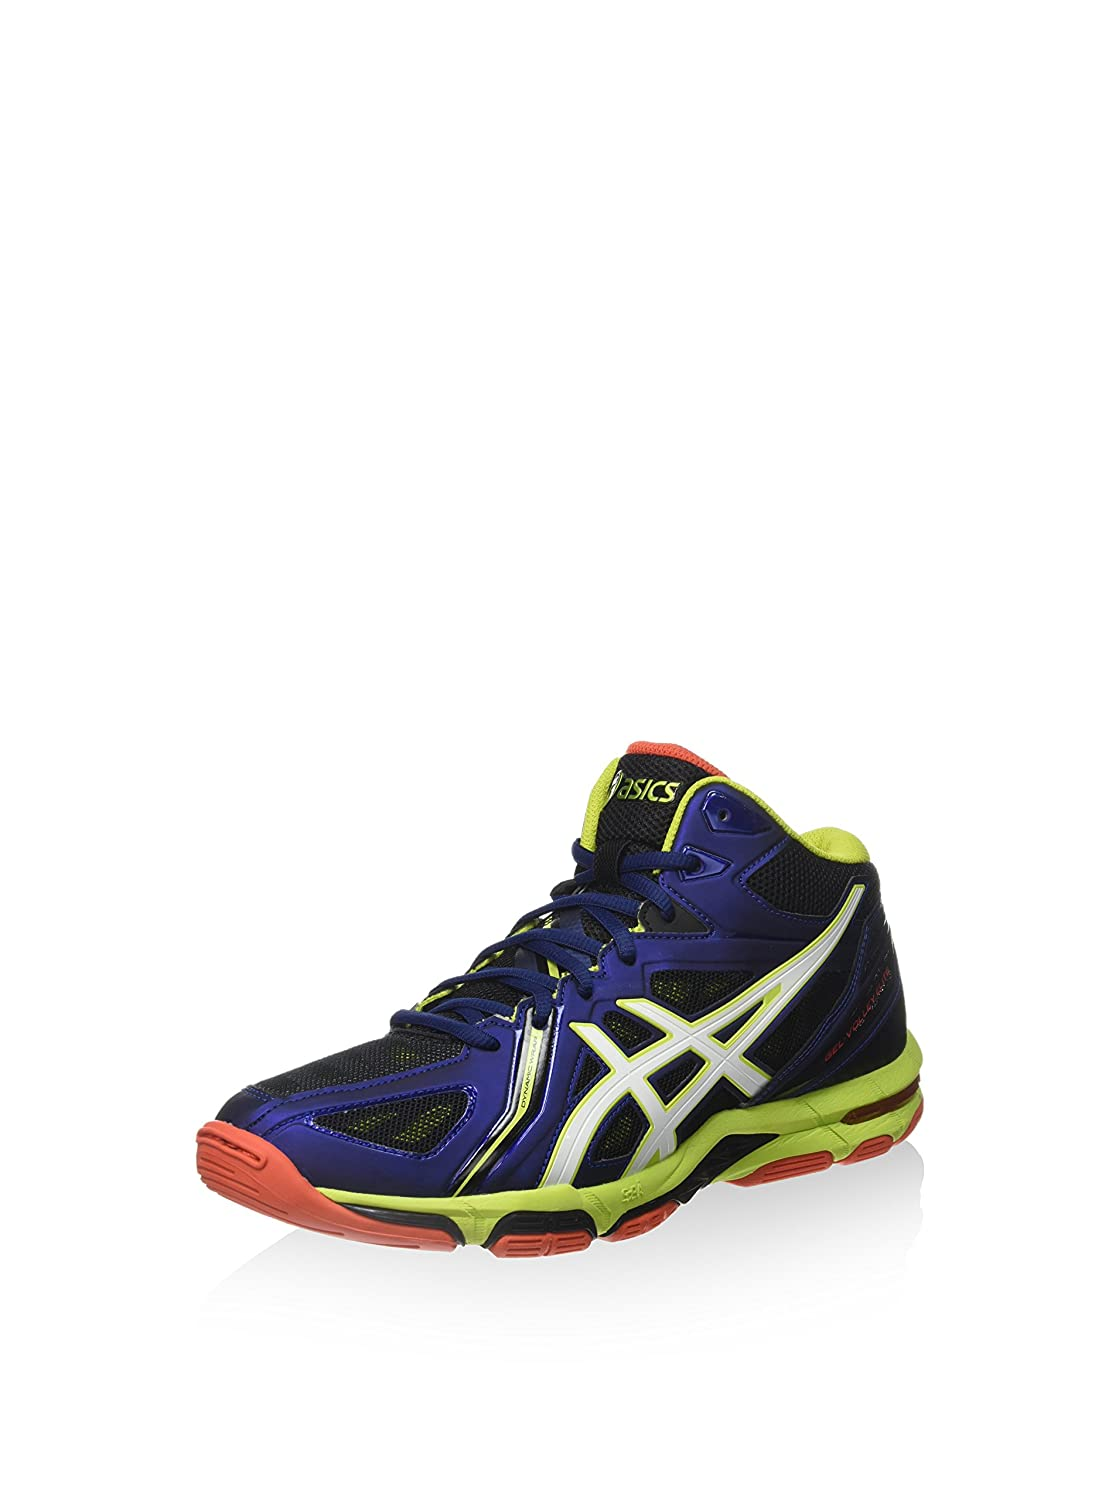 ASICS Men s Gel-Volley Elite 3 Mt Volleyball Shoes (b501n) Blue  (Navy Bianco Lime) 11 UK  Buy Online at Low Prices in India - Amazon.in a516f09d95